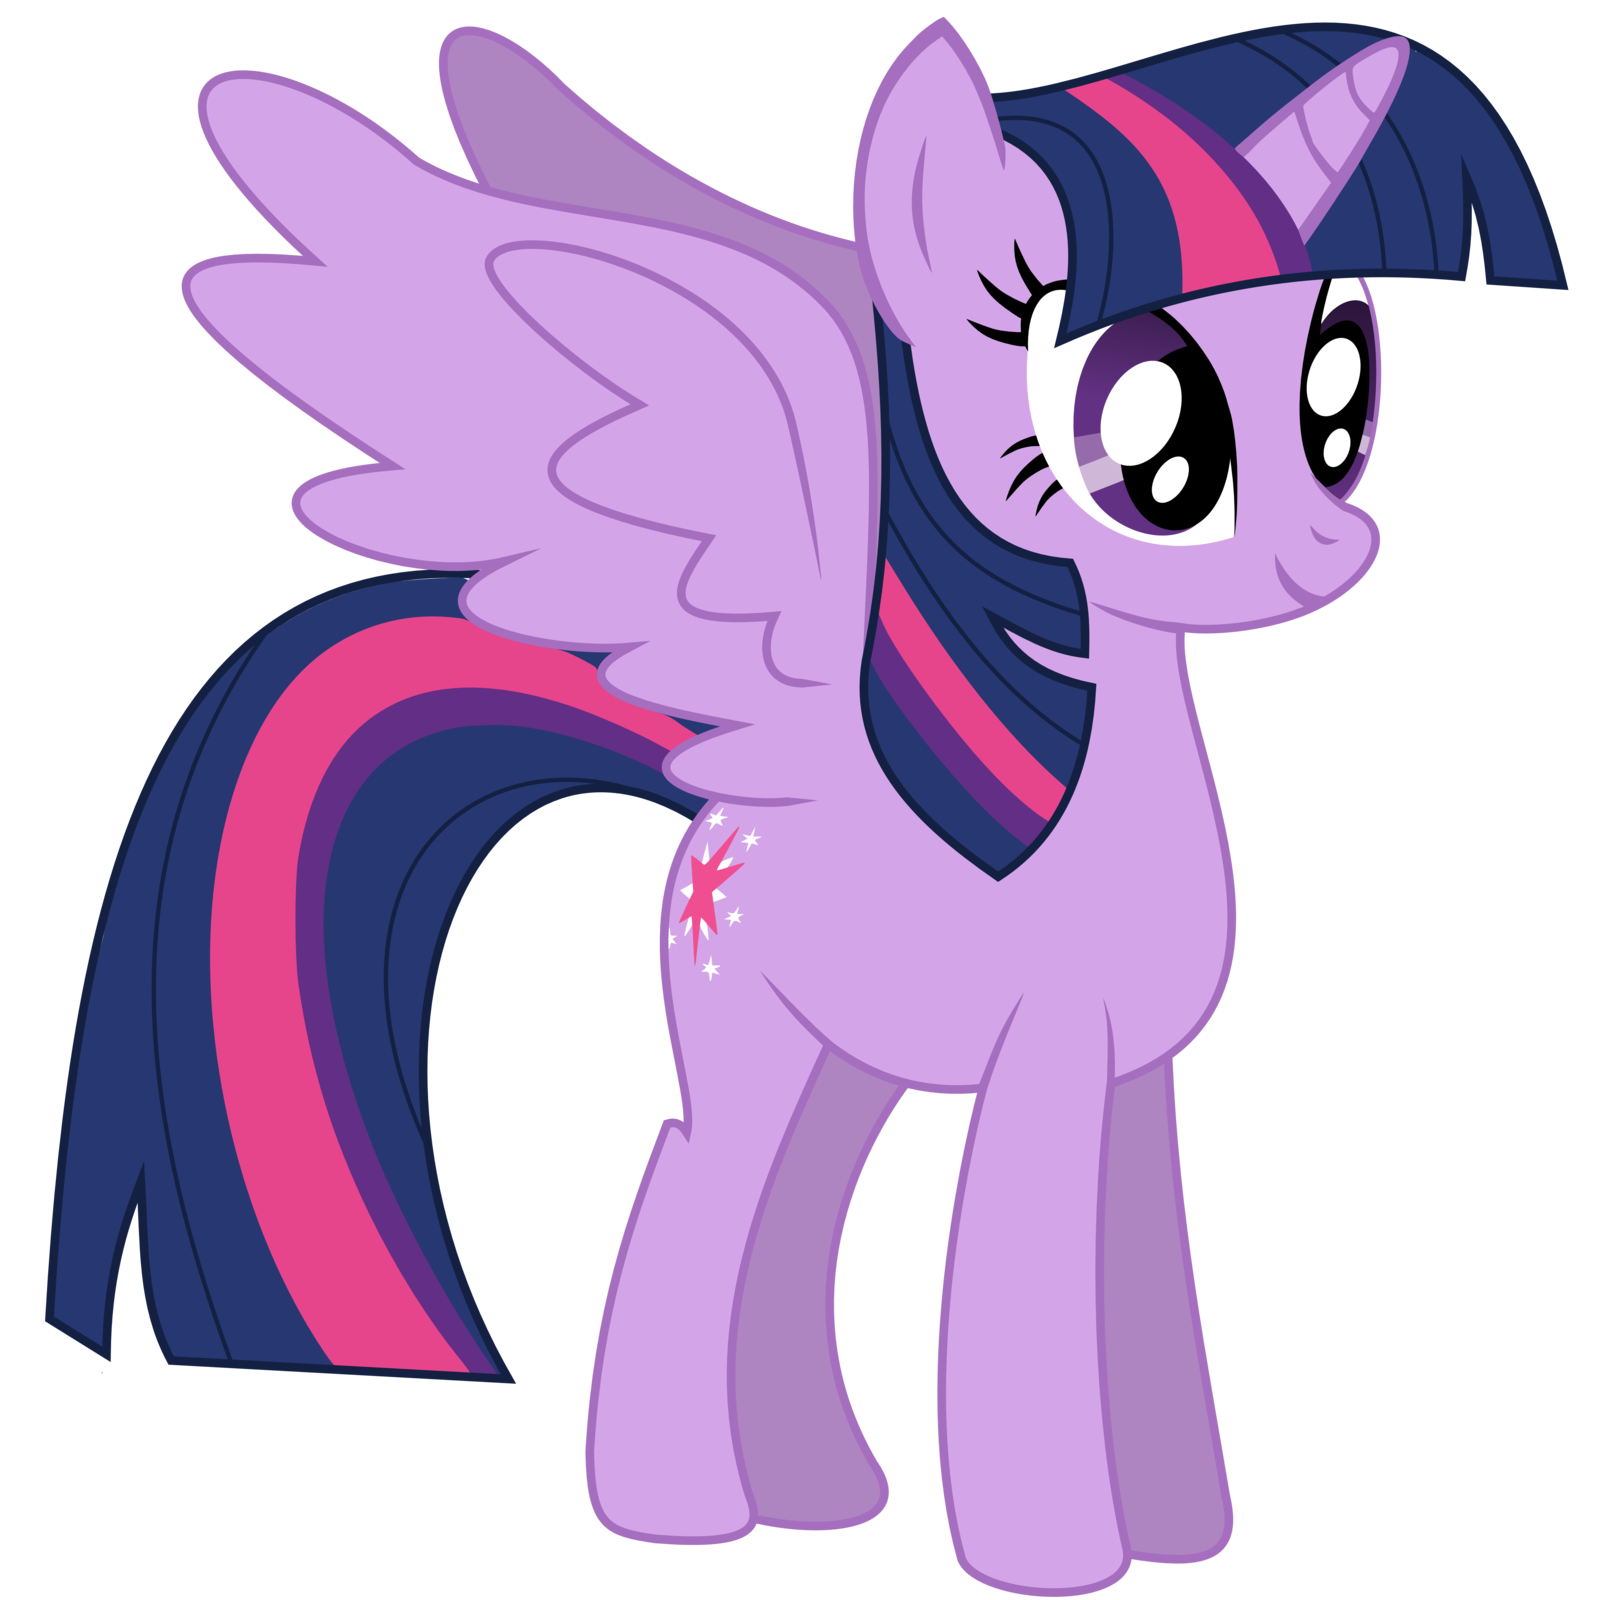 Alicorn drawing princess. Image request twilight sparkle